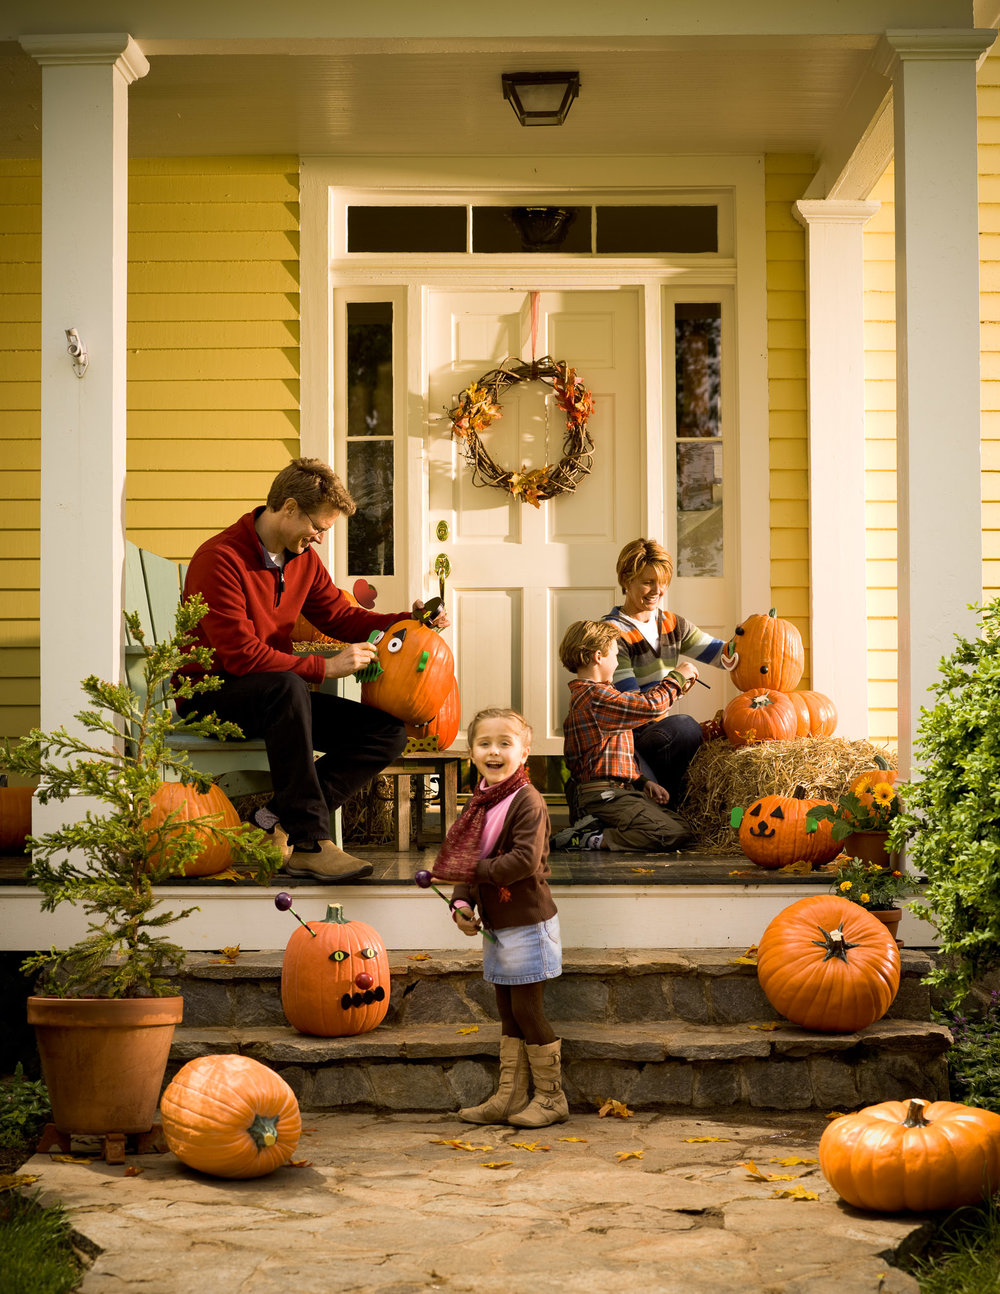 Halloween_Porch_Family.jpg